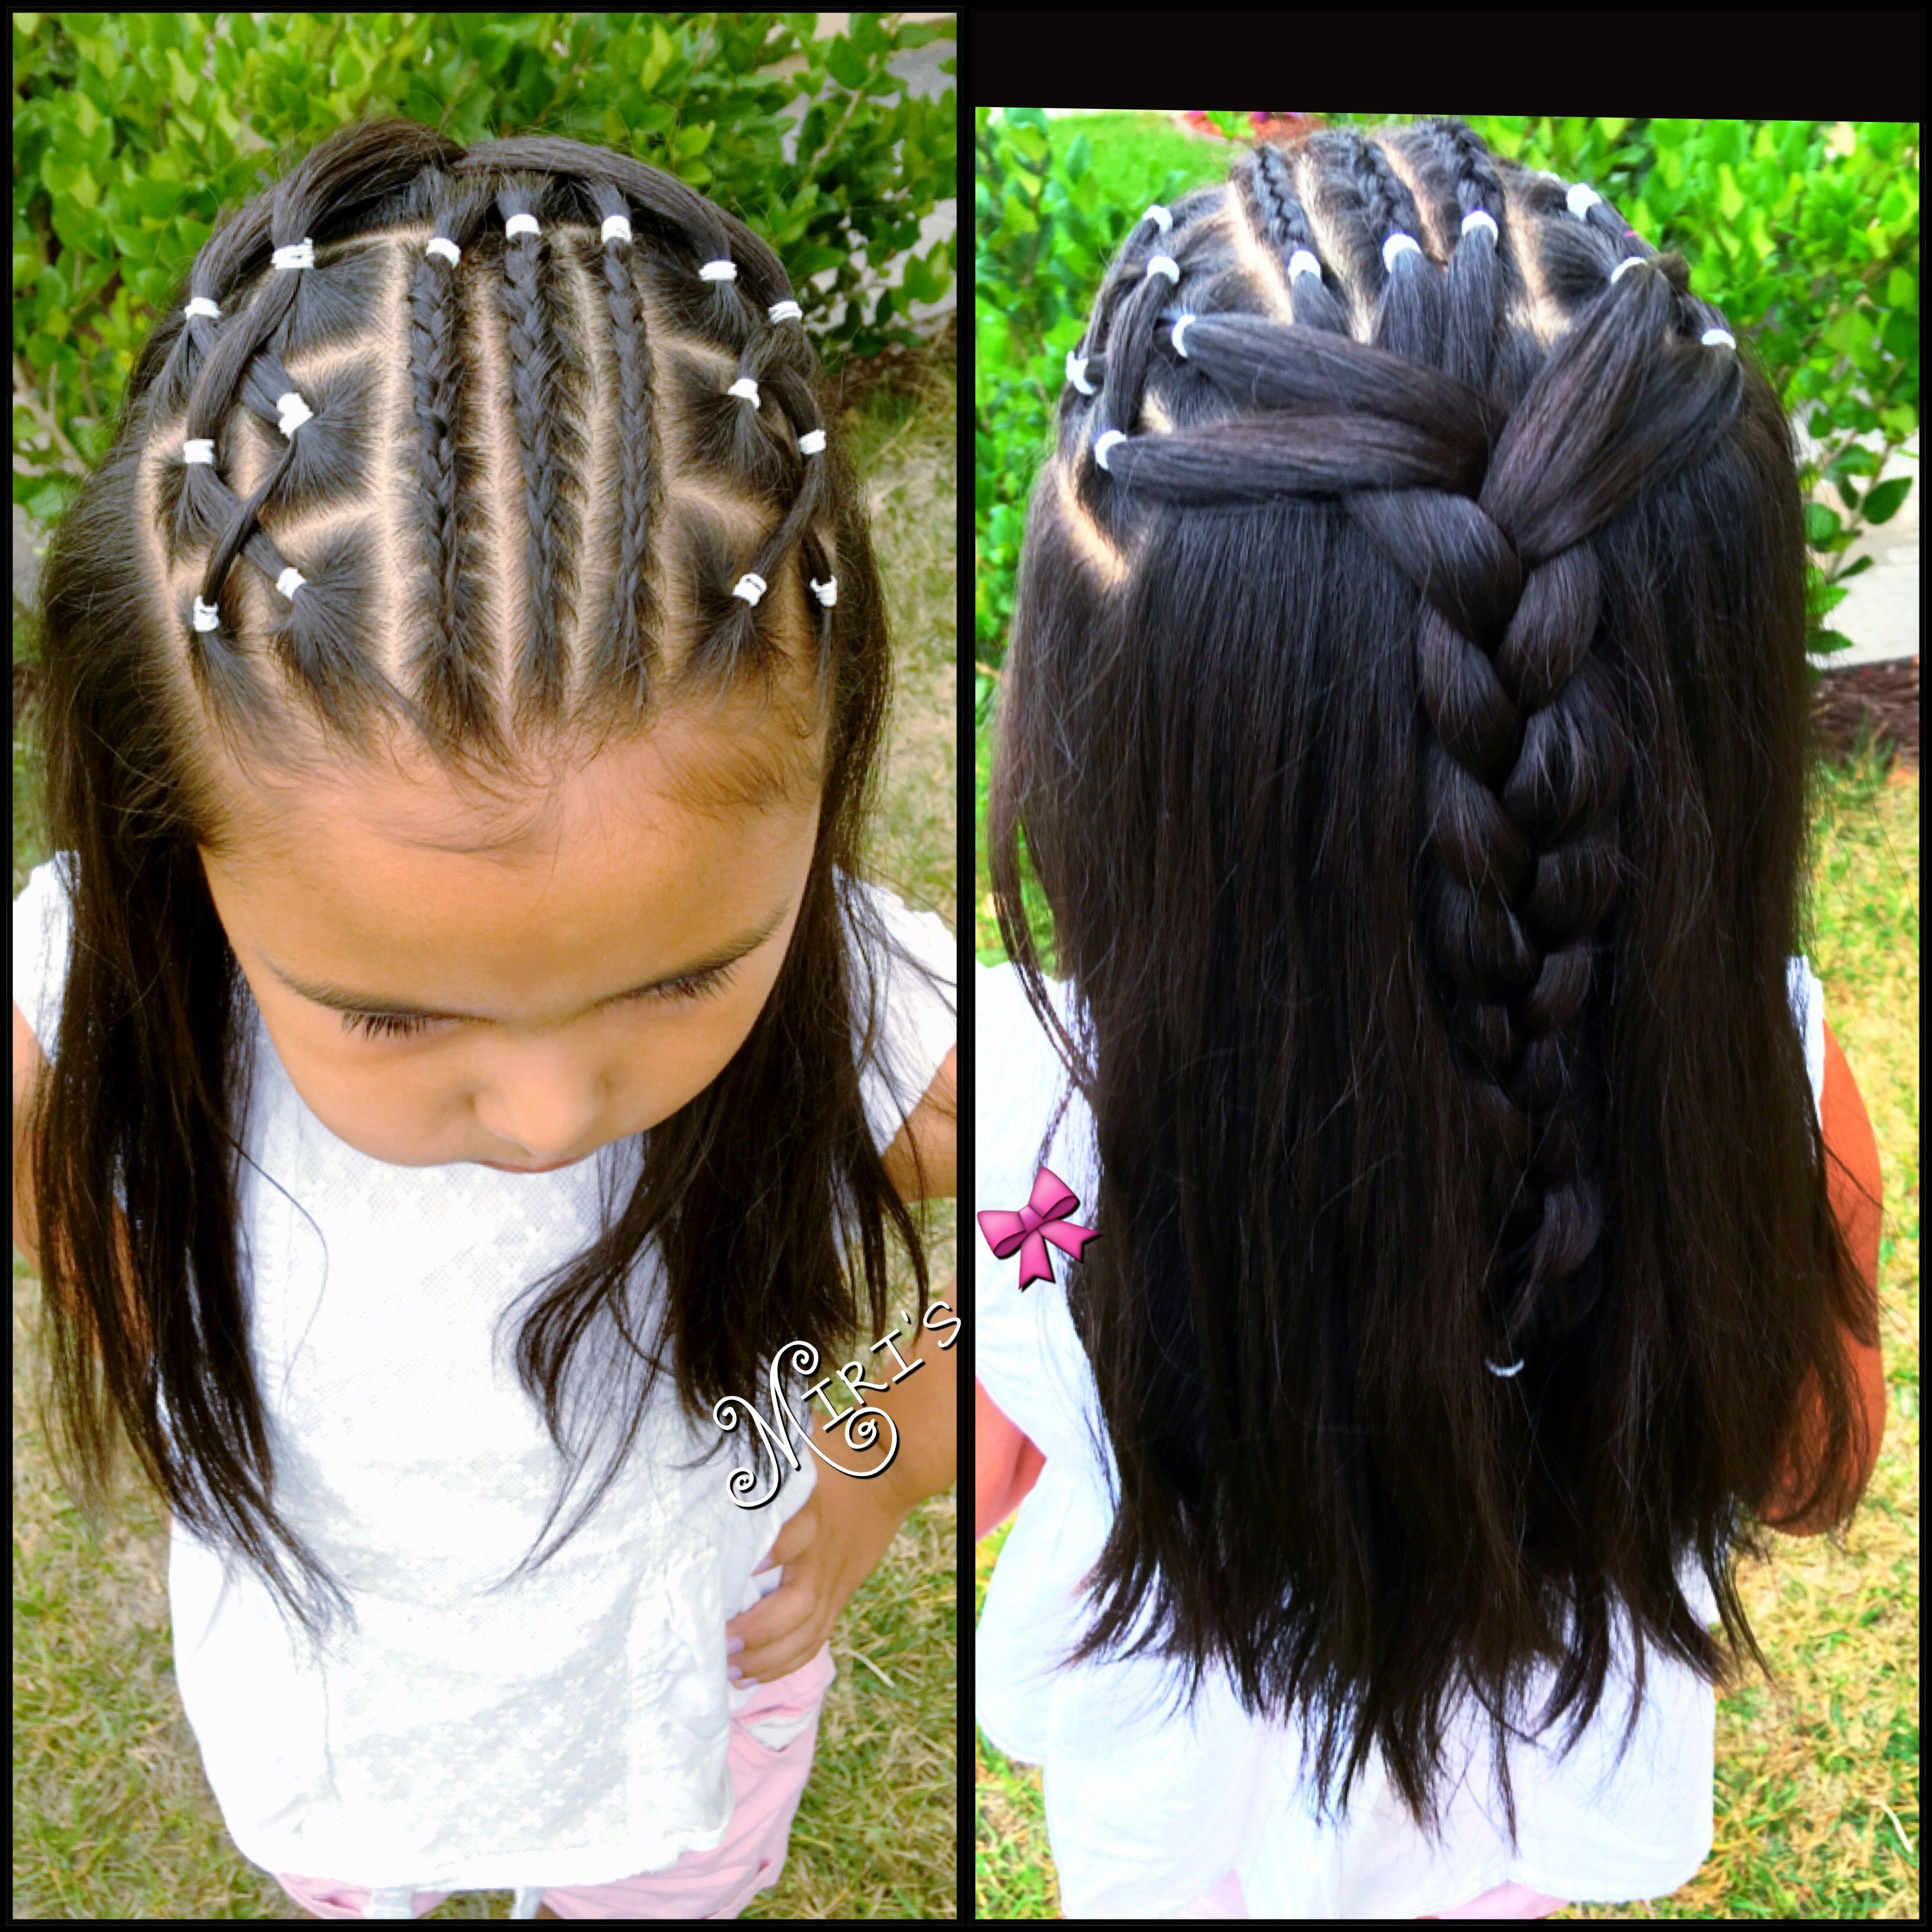 Hairstyles For Girls With Mixed Hair: Mixed Girl Hairstyles, Hair